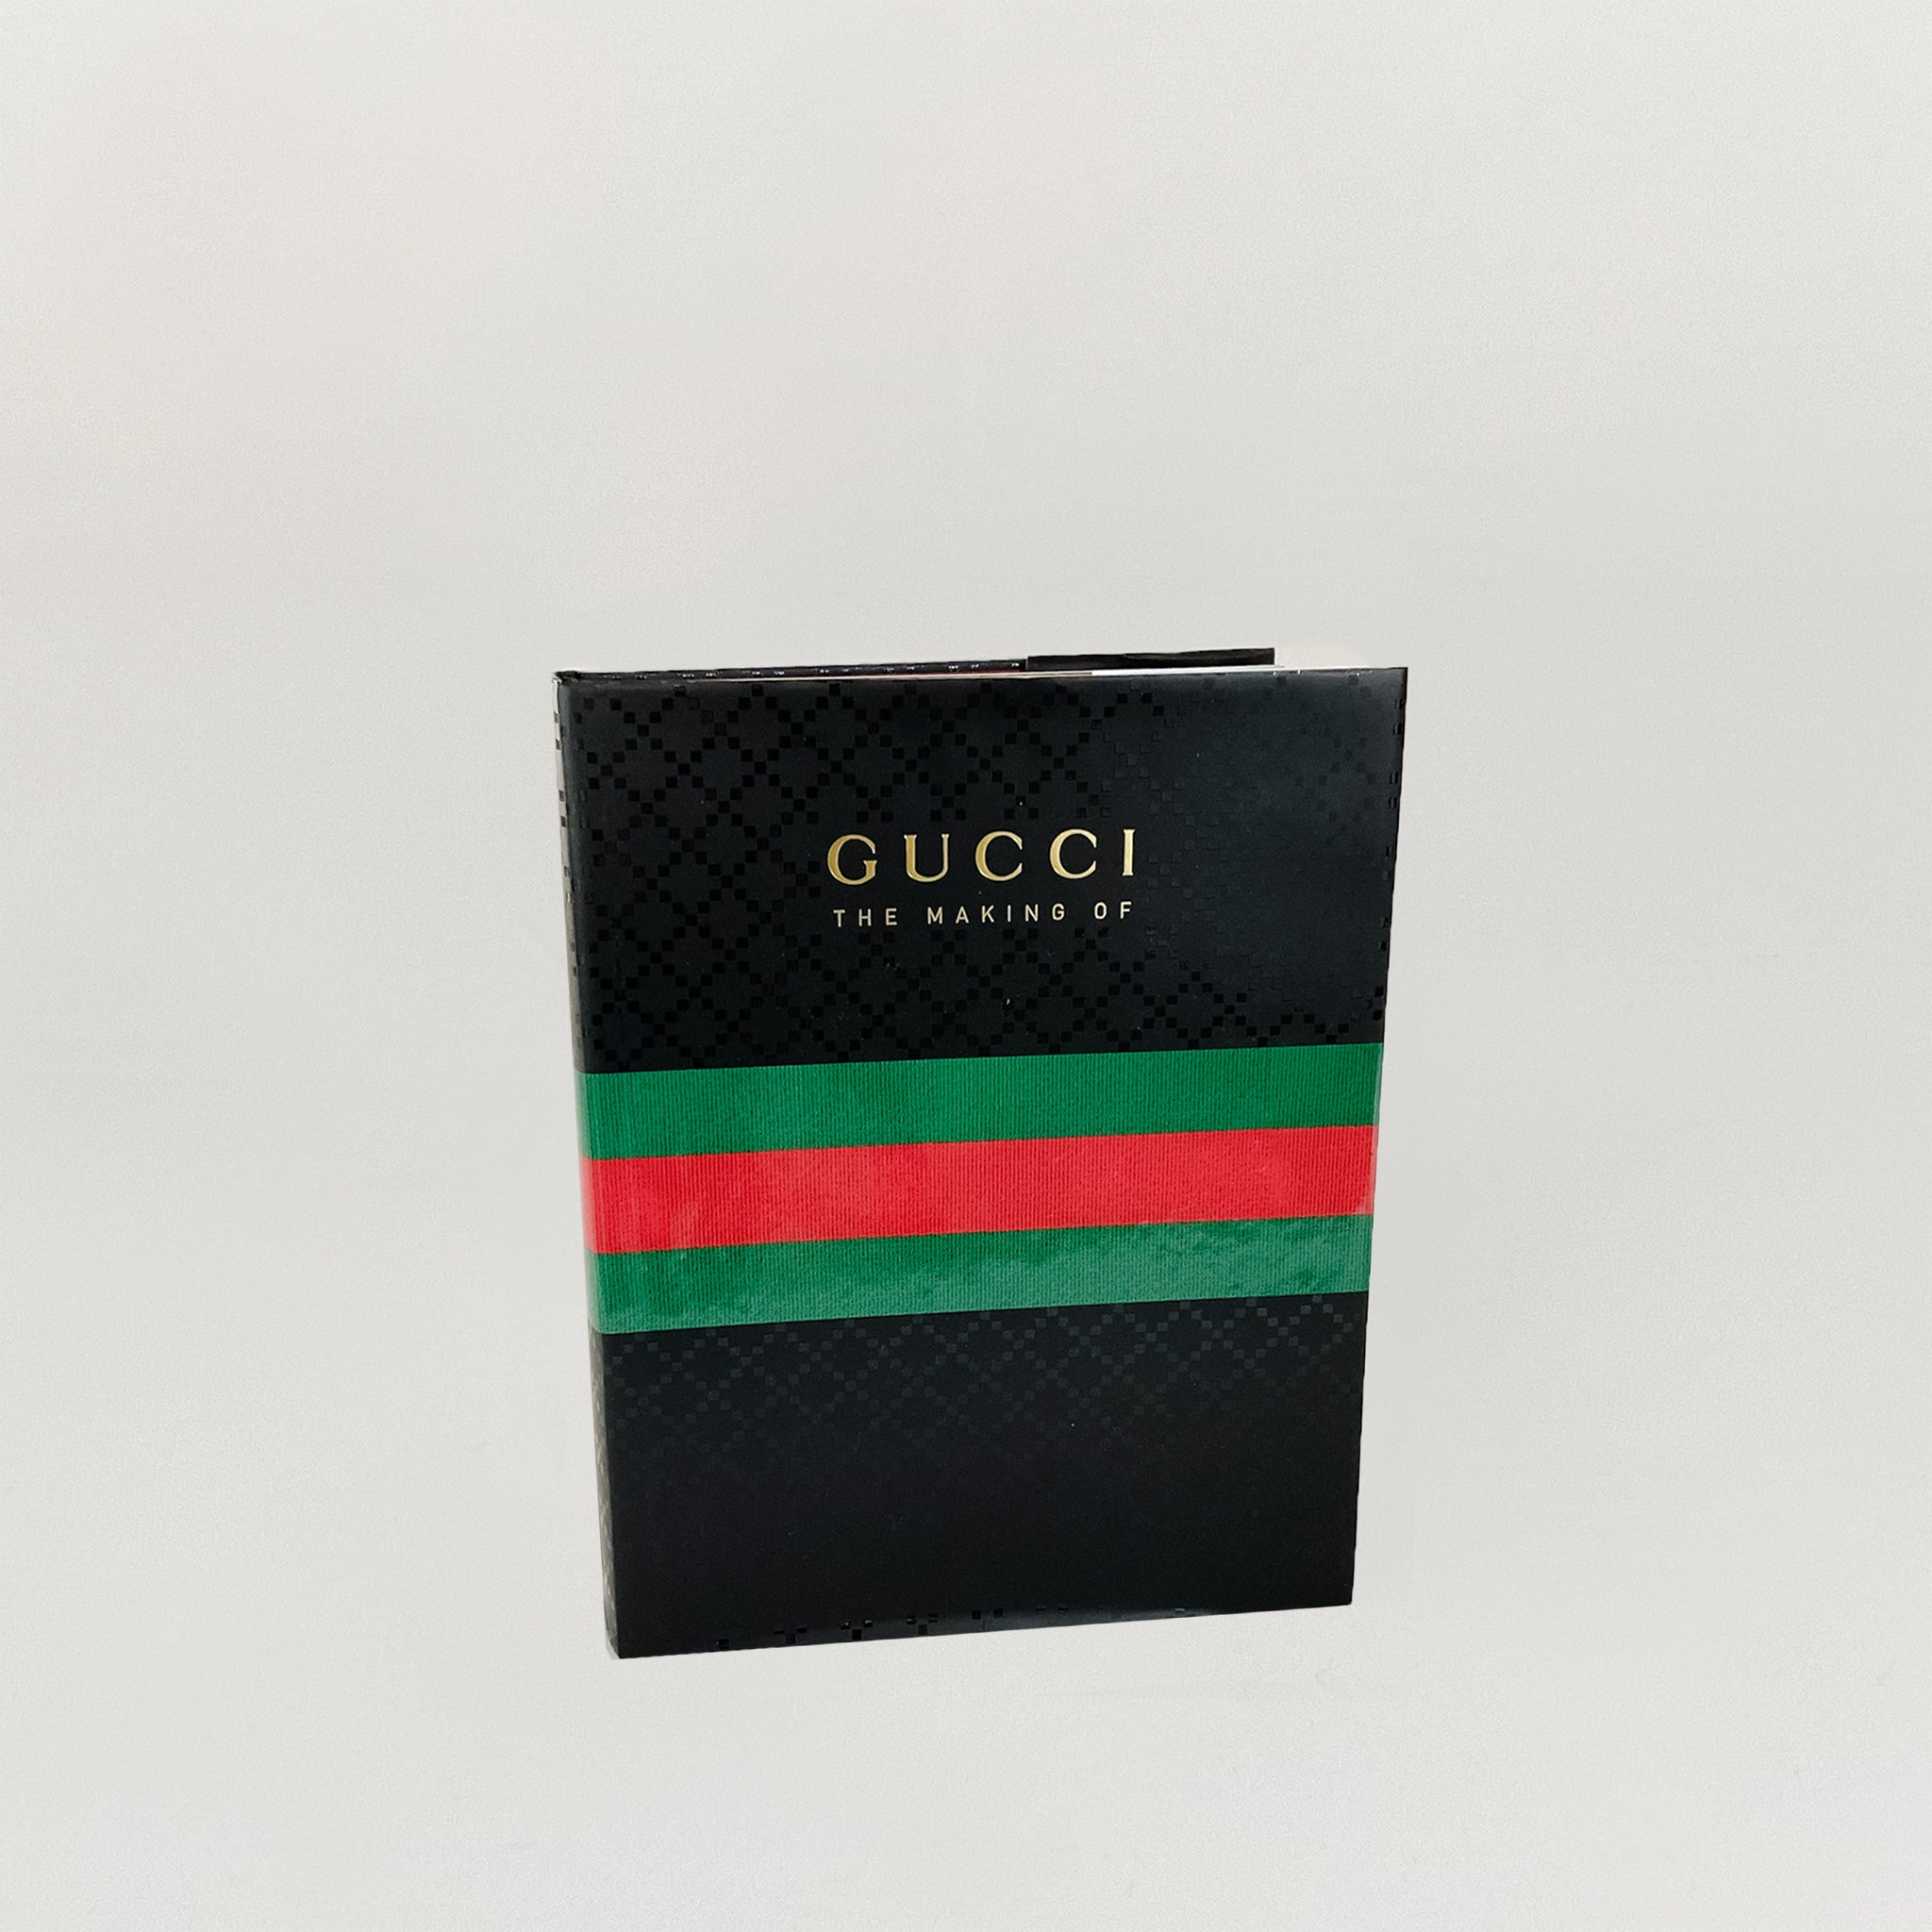 The Making of GUCCI